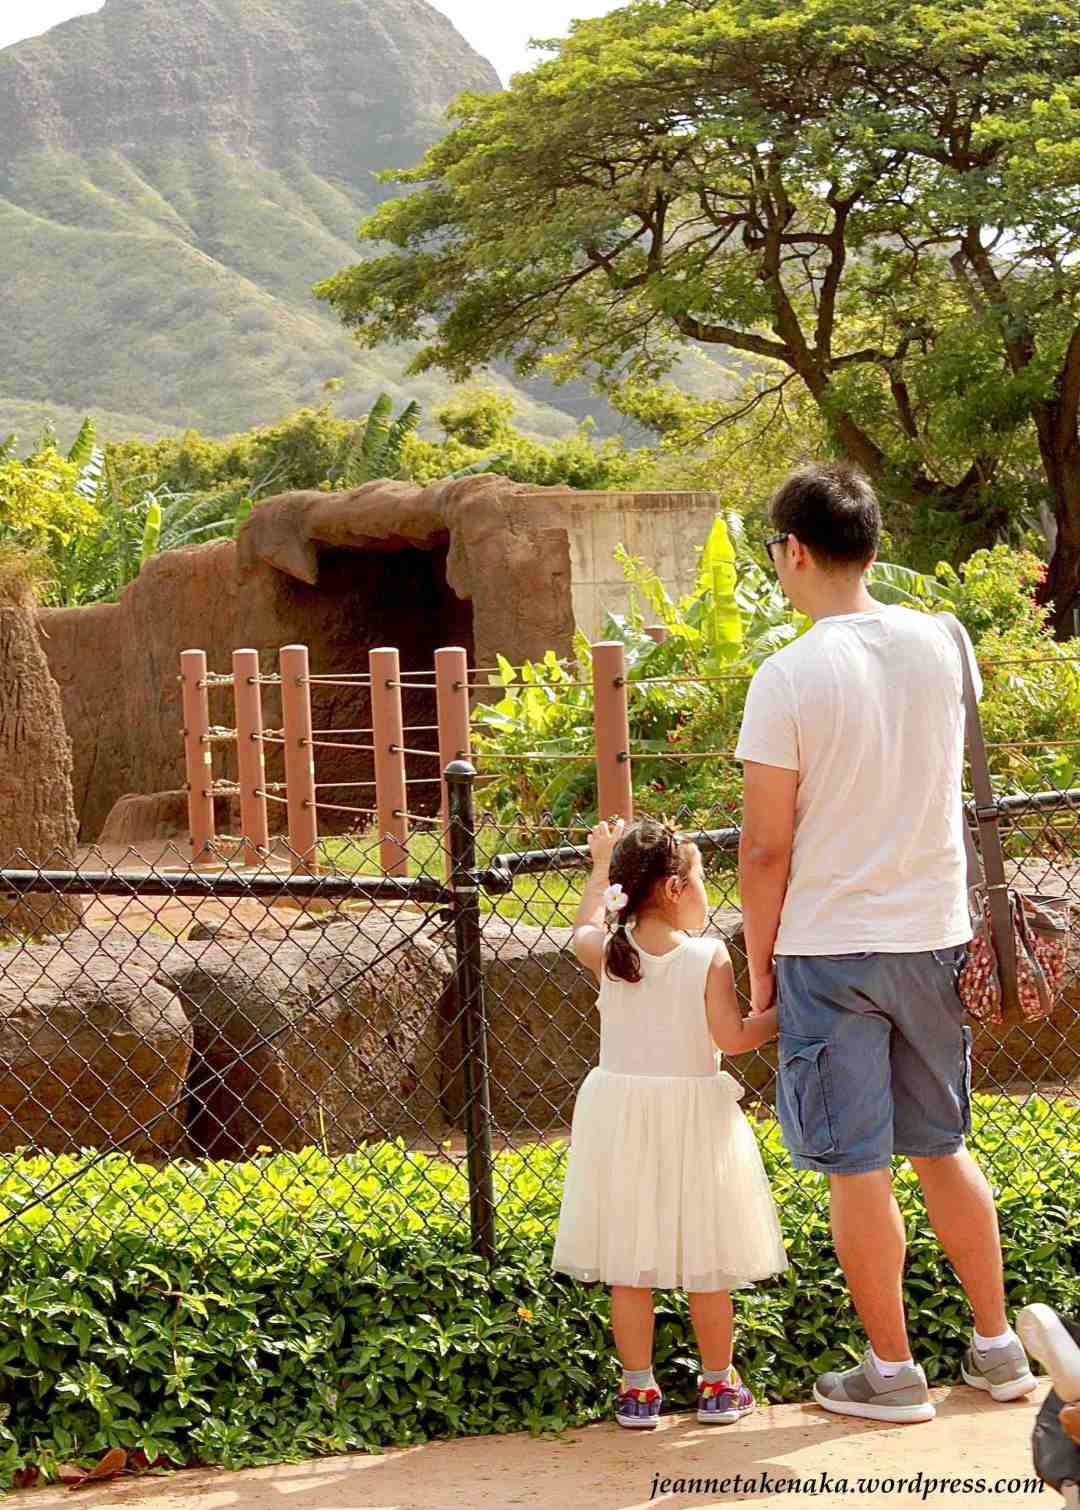 A father and daughter standing at an exhibit at a zoo